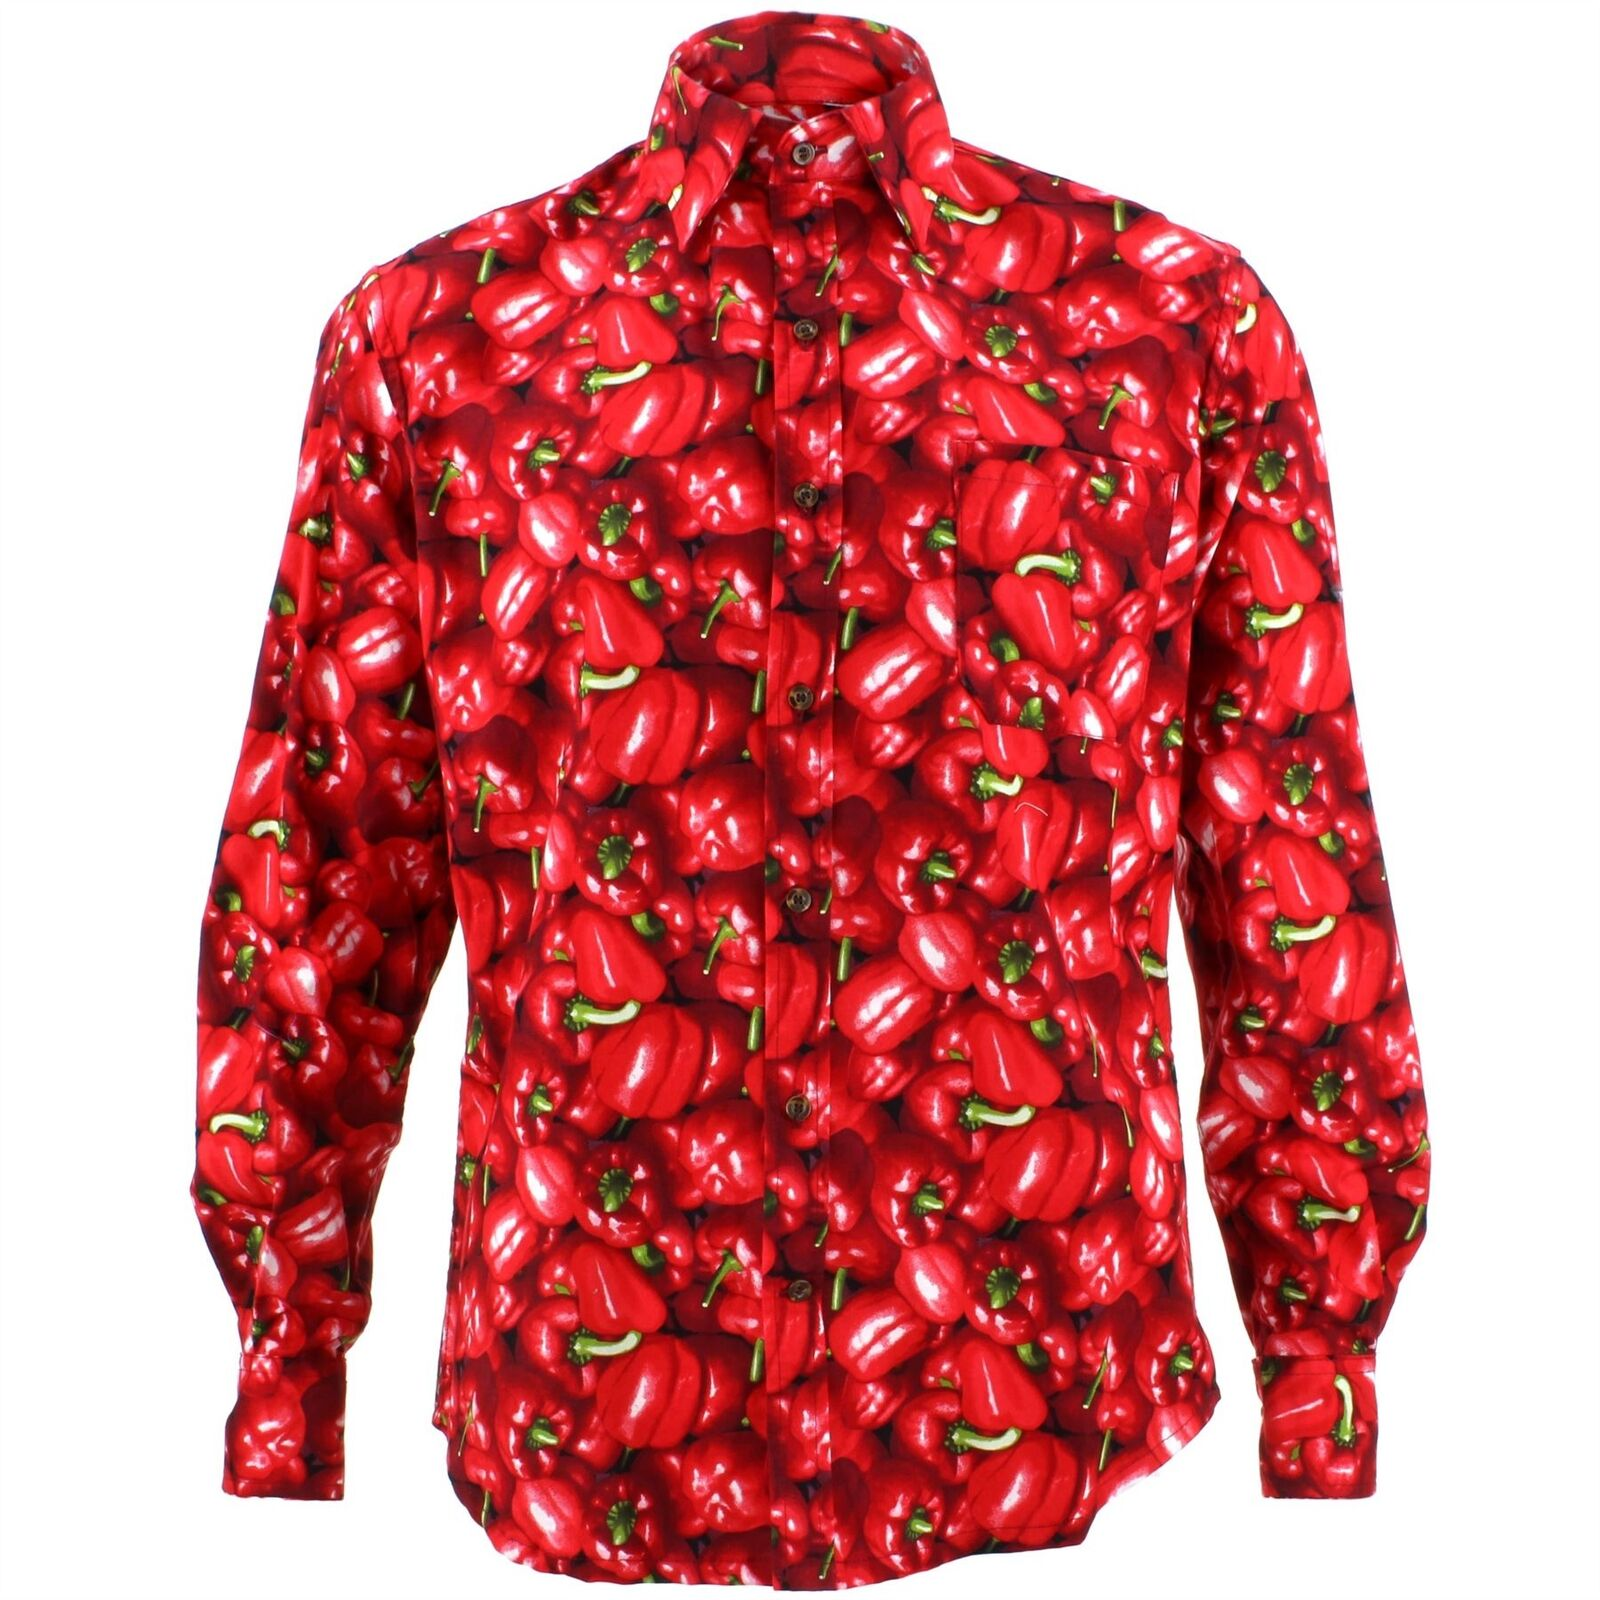 Men's Loud Shirt Retro Psychedelic Funky Party TAILORED FIT Red Peppers Capsicum